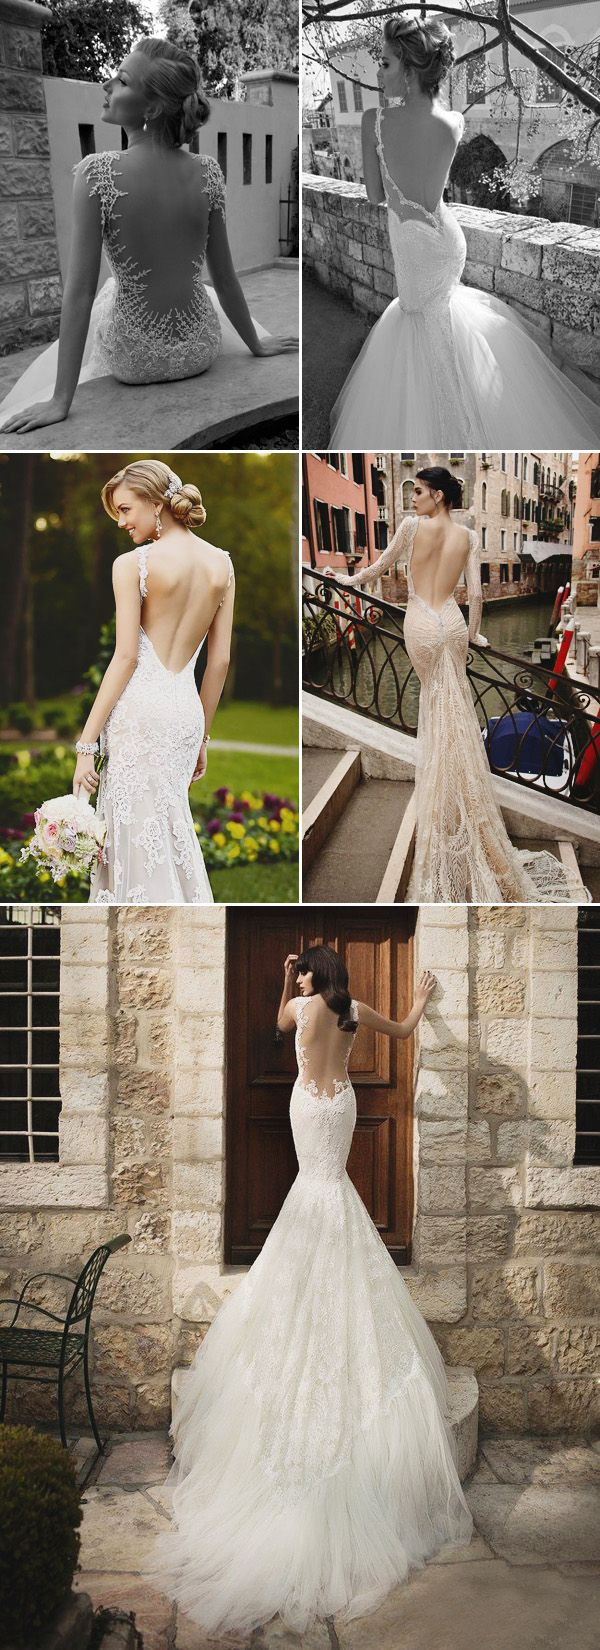 Mermaid Wedding Dresses In Chicago : Best weddingggg images on